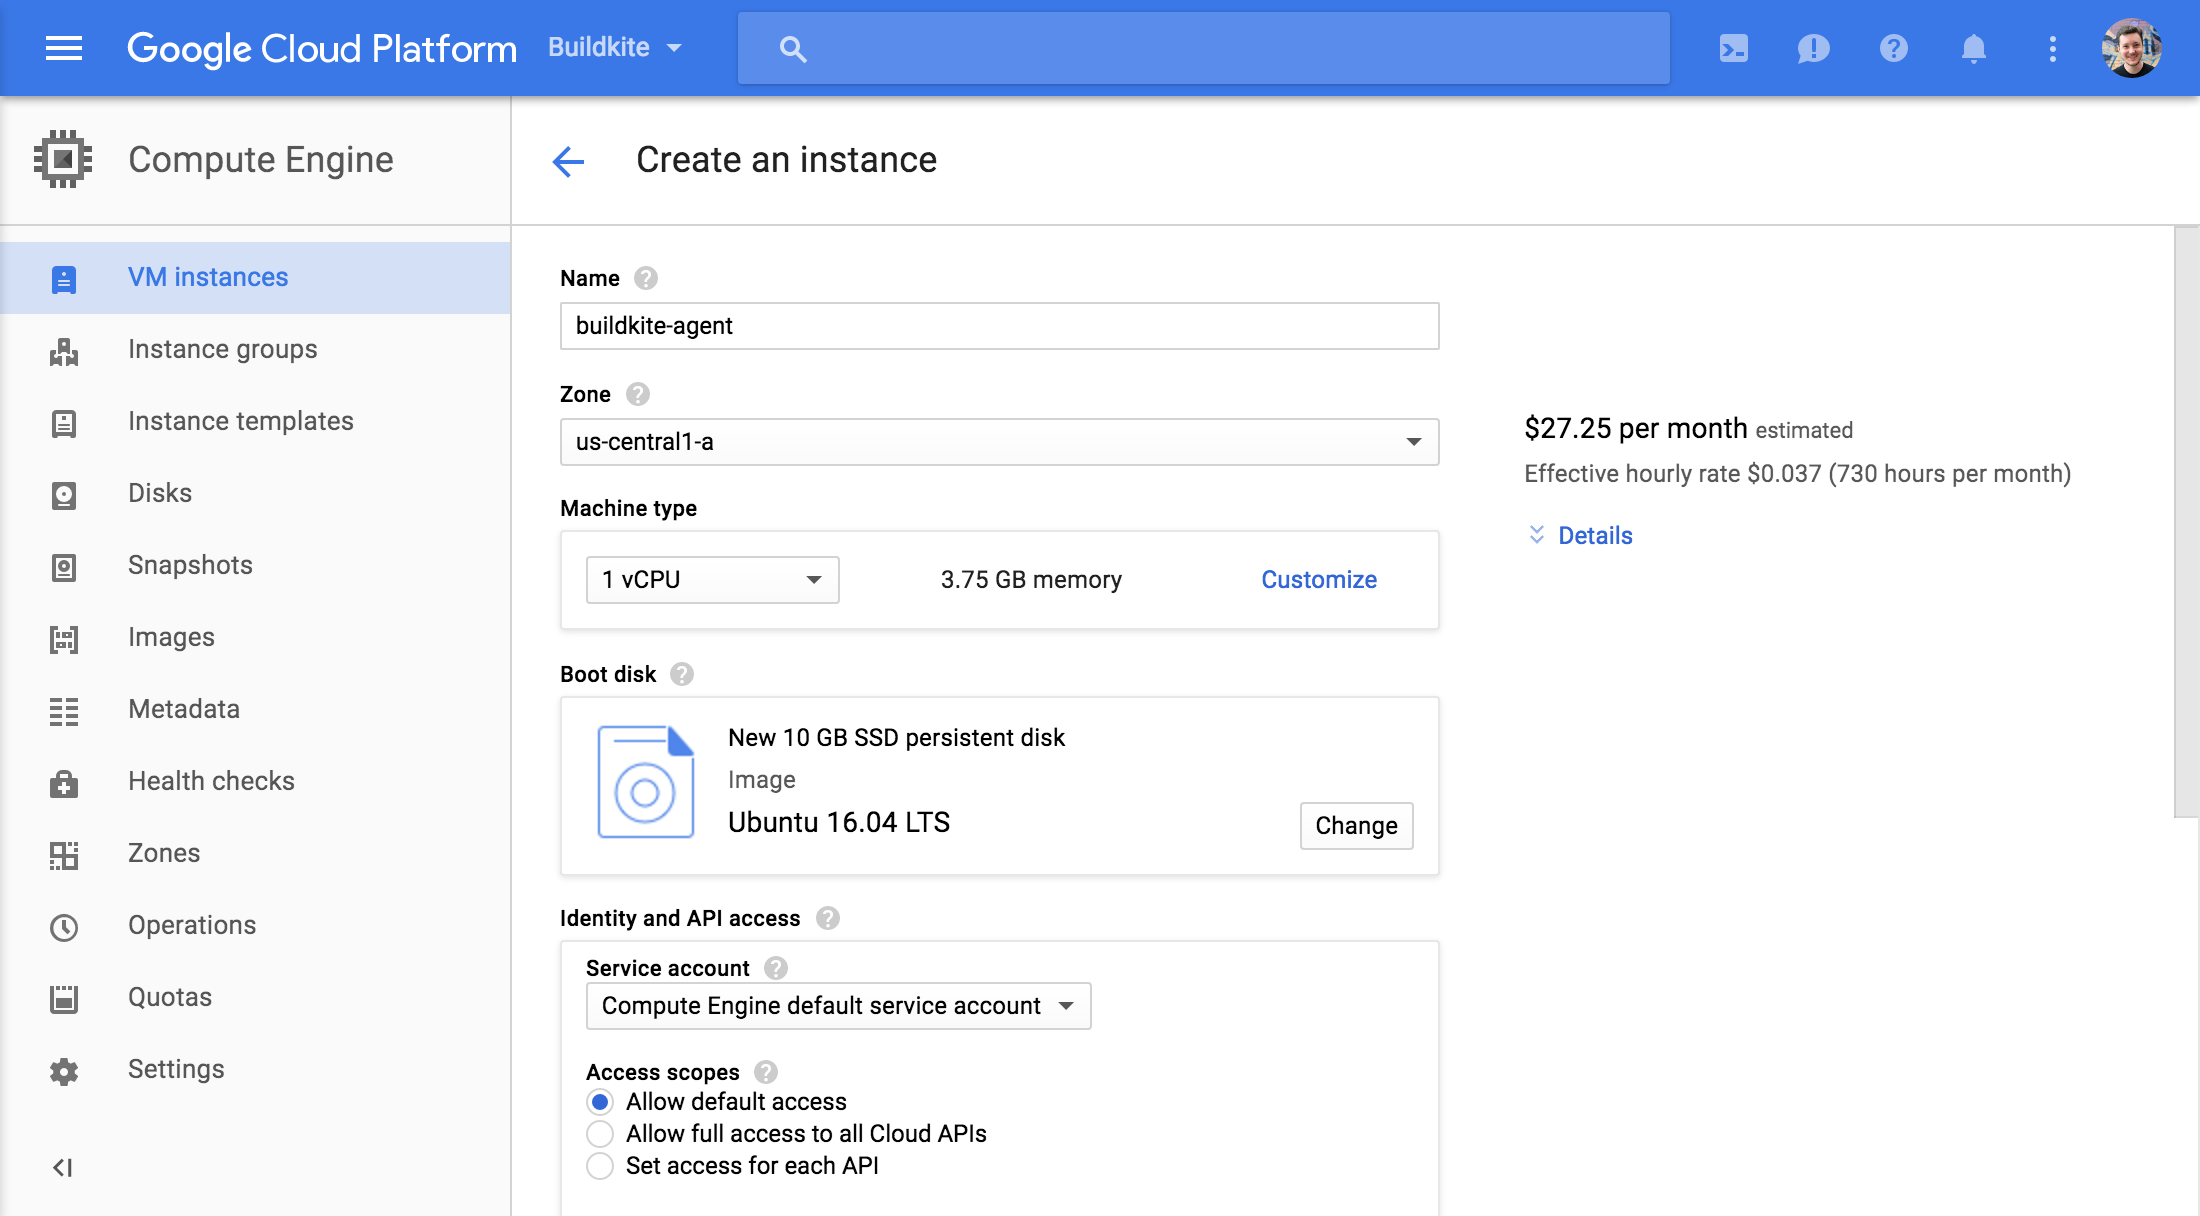 Screenshot of creating a Google Compute Engine instance running Ubuntu 16.04 LTS via the Google Cloud Console